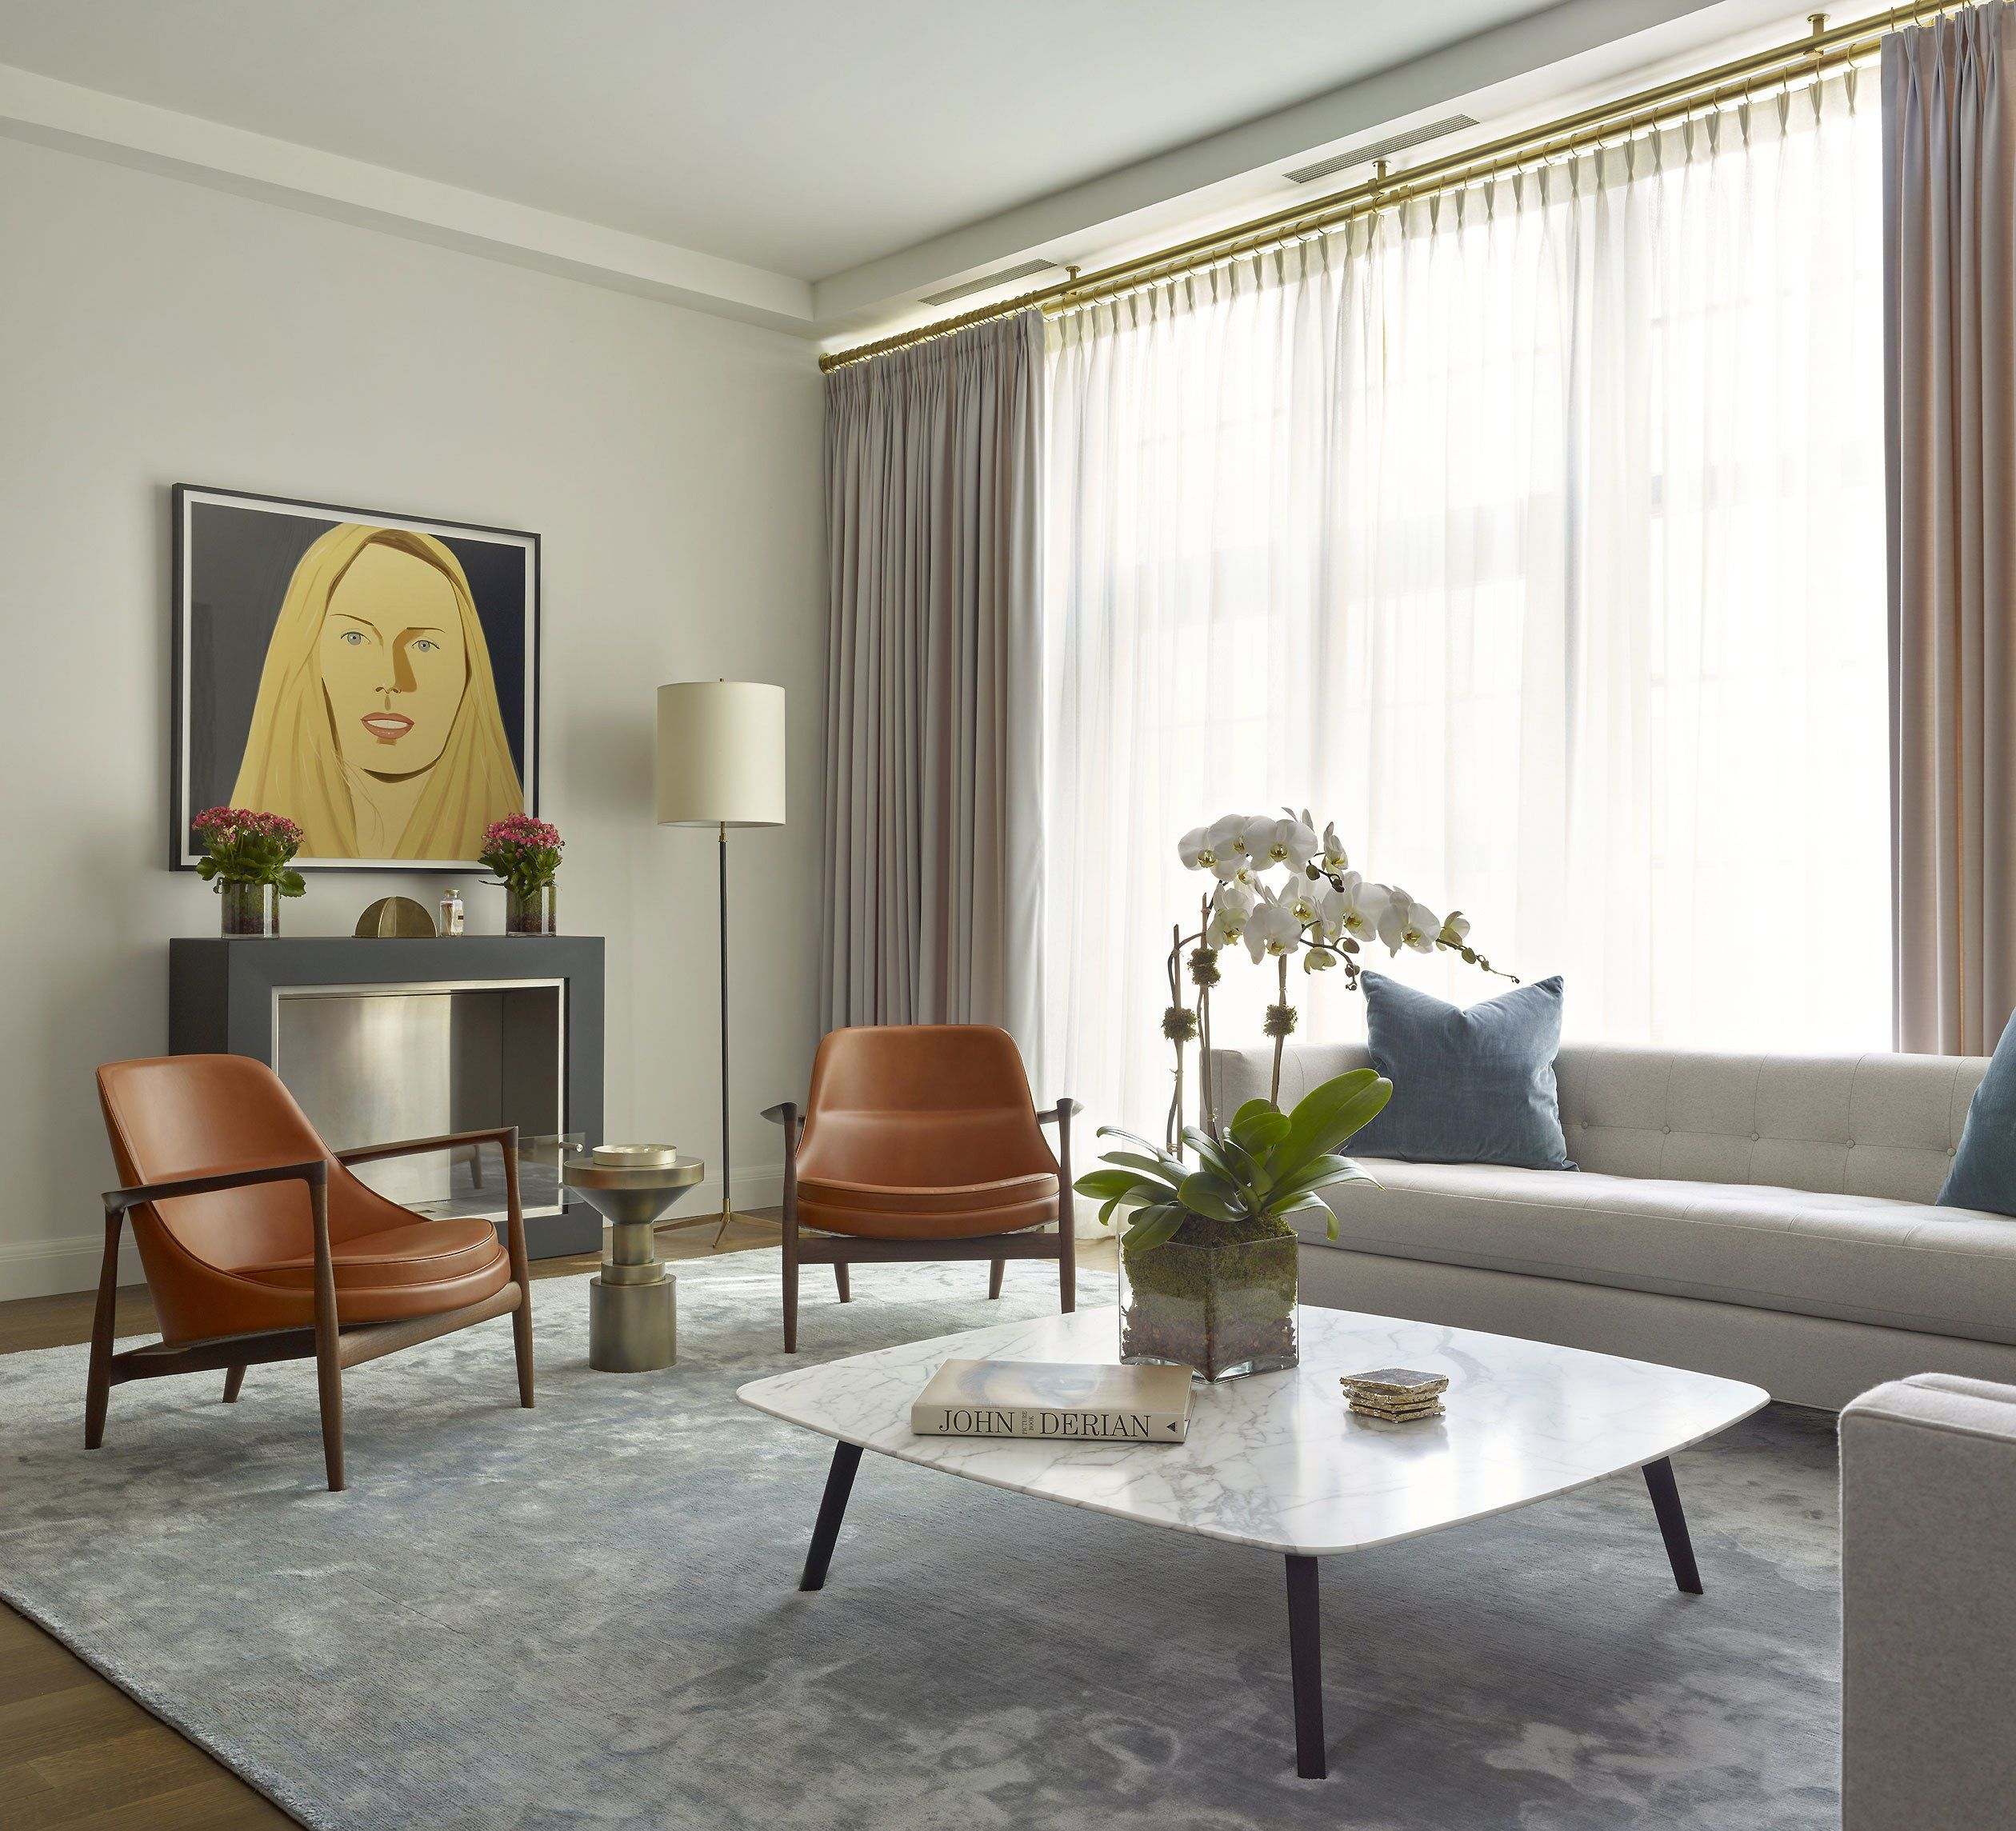 Apartment Wallpaper: This Manhattan Apartment Will Make You Fall In Love With